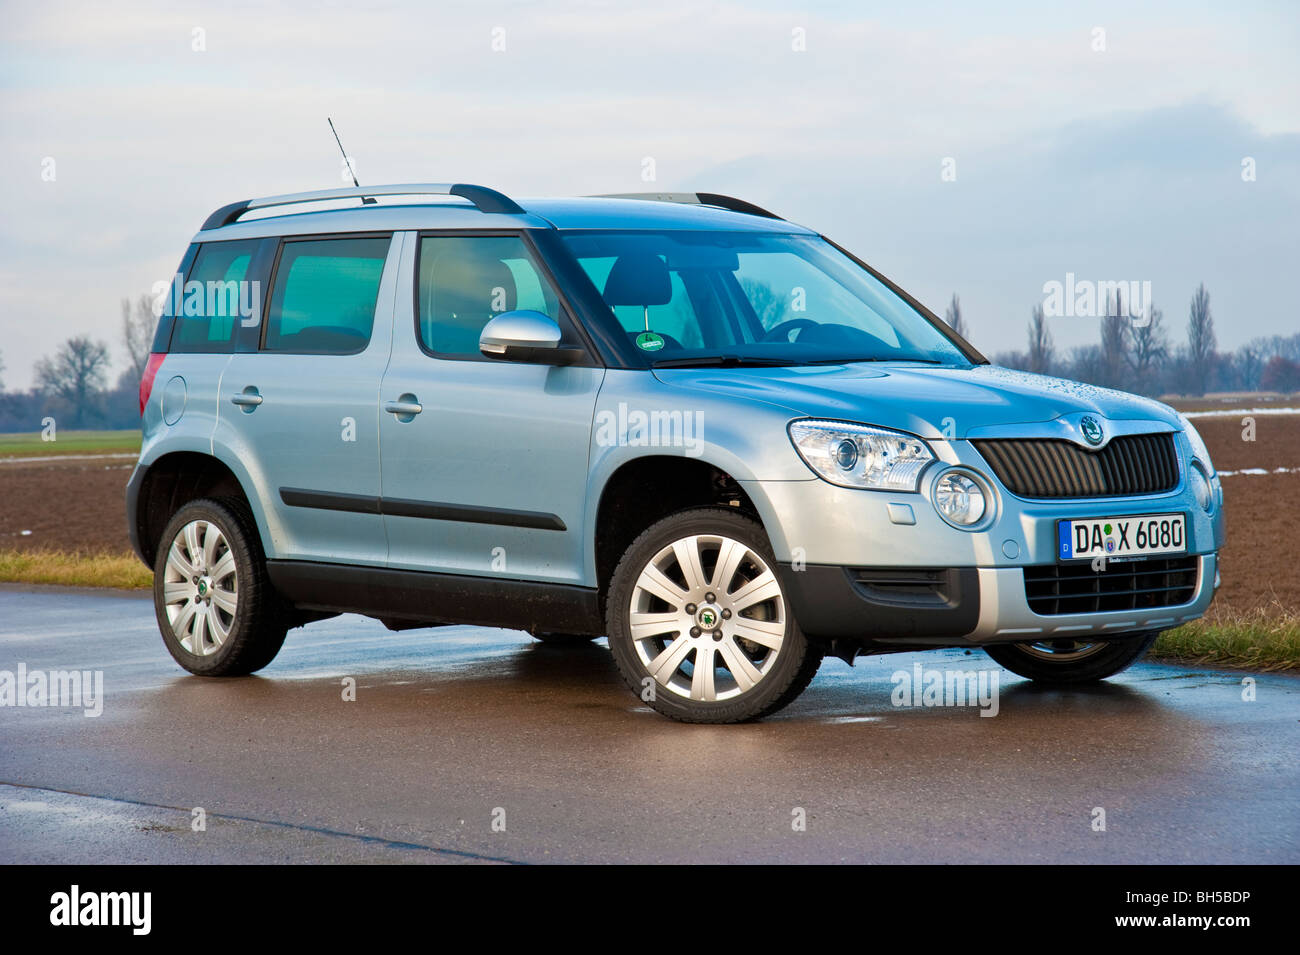 Front Side View Skoda Yeti Suv Model In Light Blue Metallic